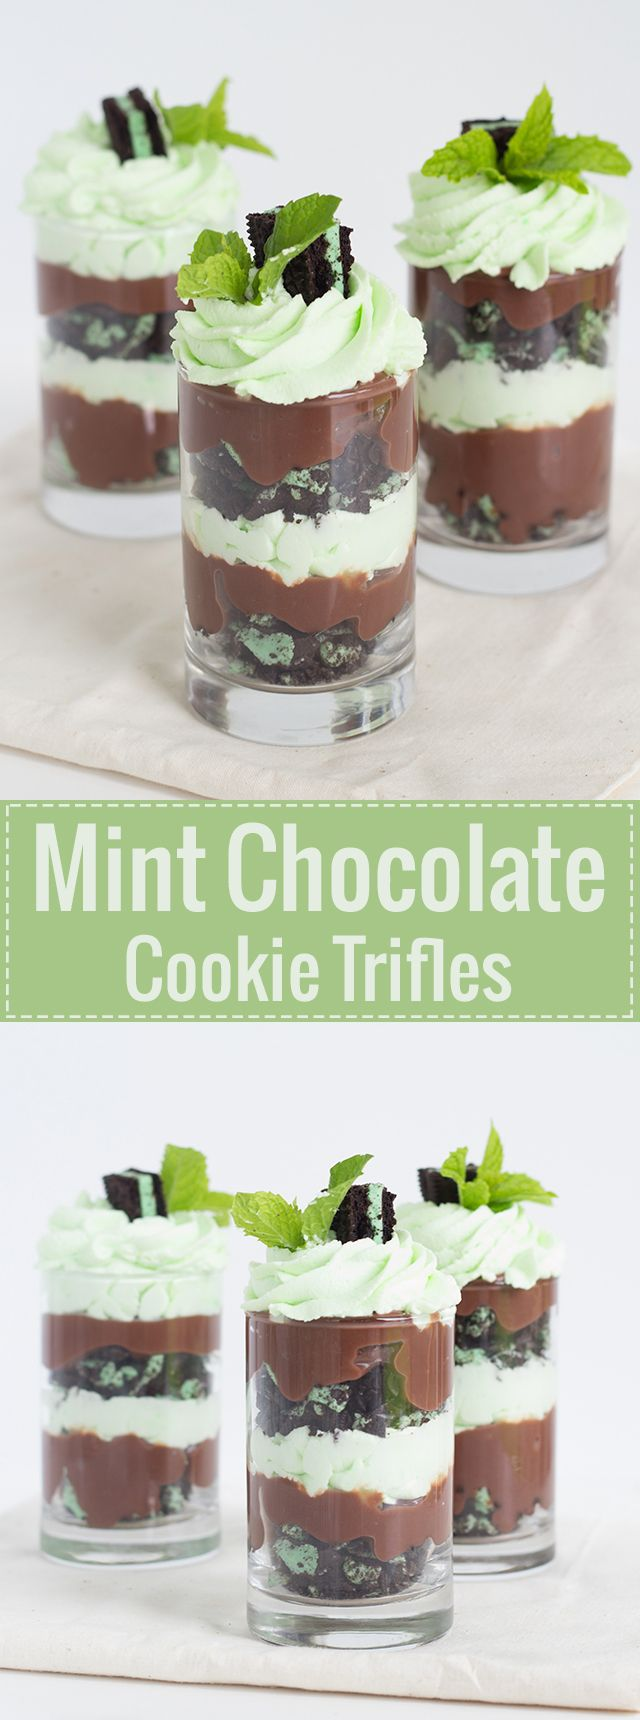 Easy Mint Chocolate Cookie Trifles